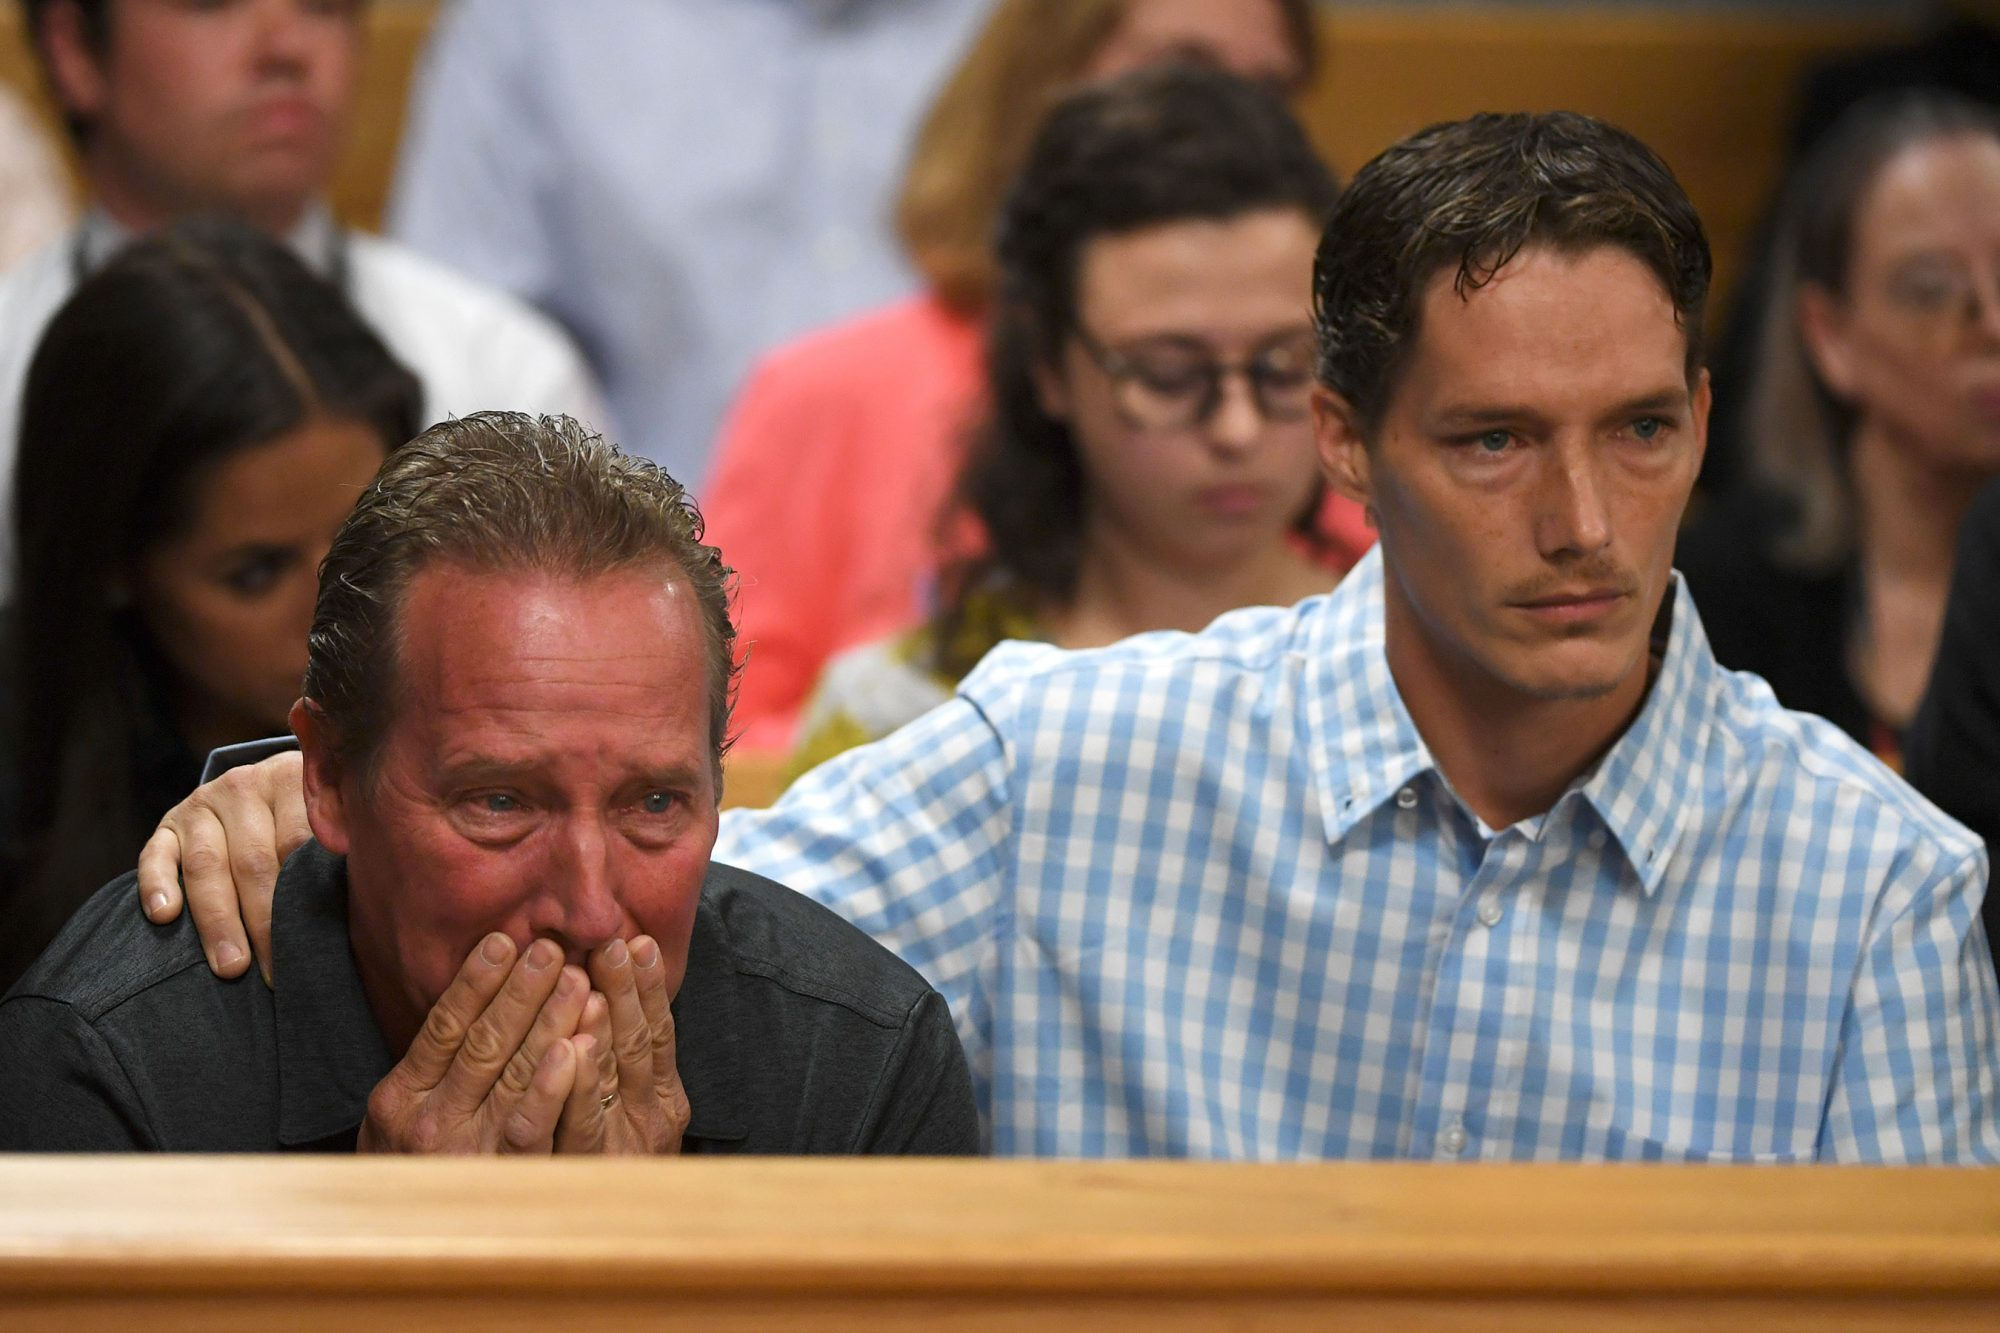 Aug. 21: Shan'ann's Grieving Family Appears in Court